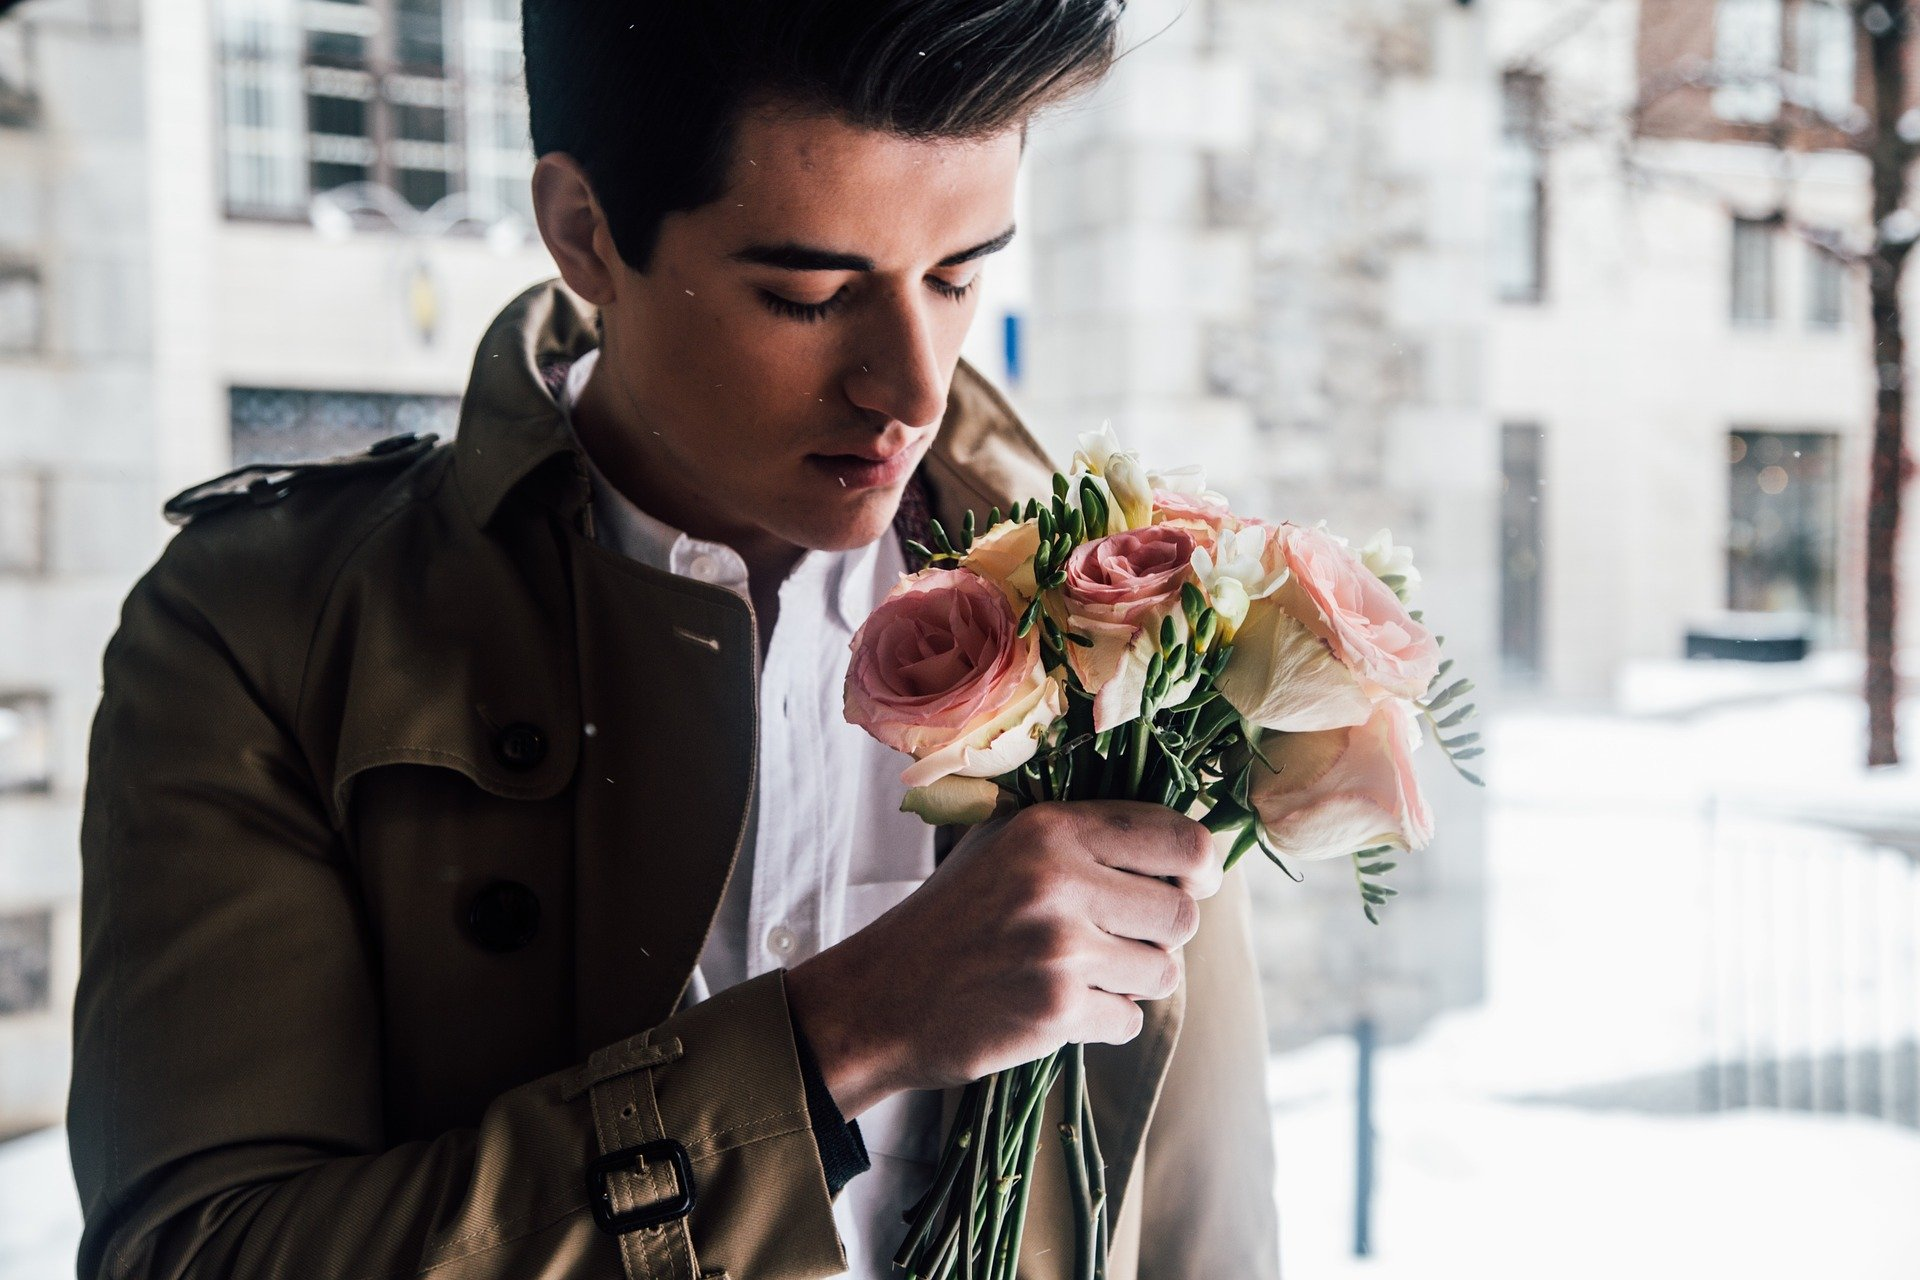 Good looking Guy with Flowers